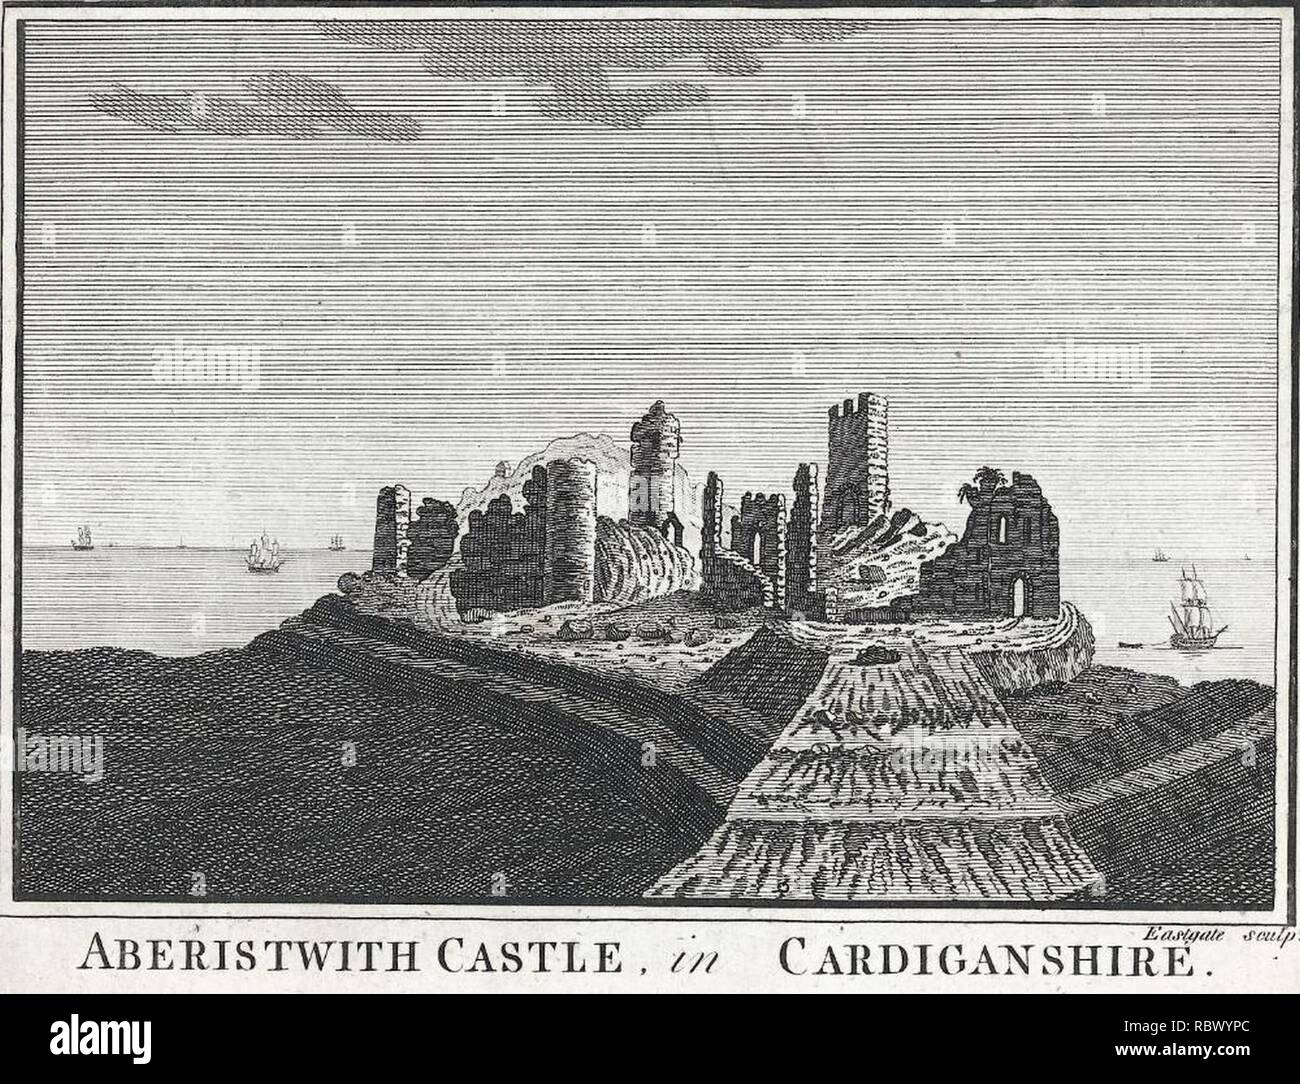 Aberistwith Castle, in Cardiganshire (1131683). - Stock Image